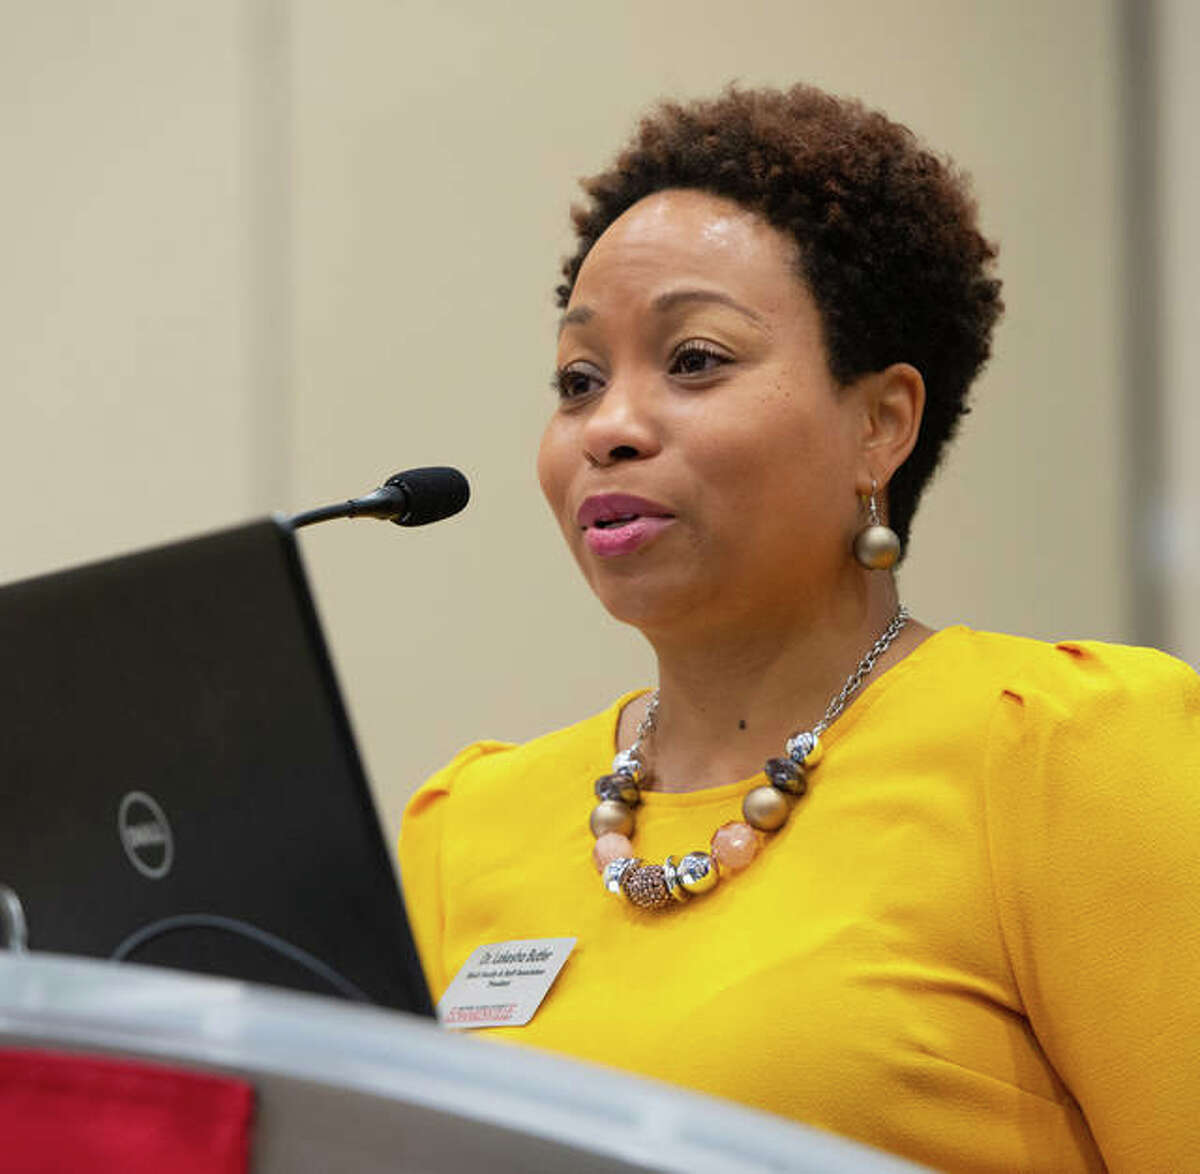 Lakesha Butler, presenting at the State of the Black Union event.